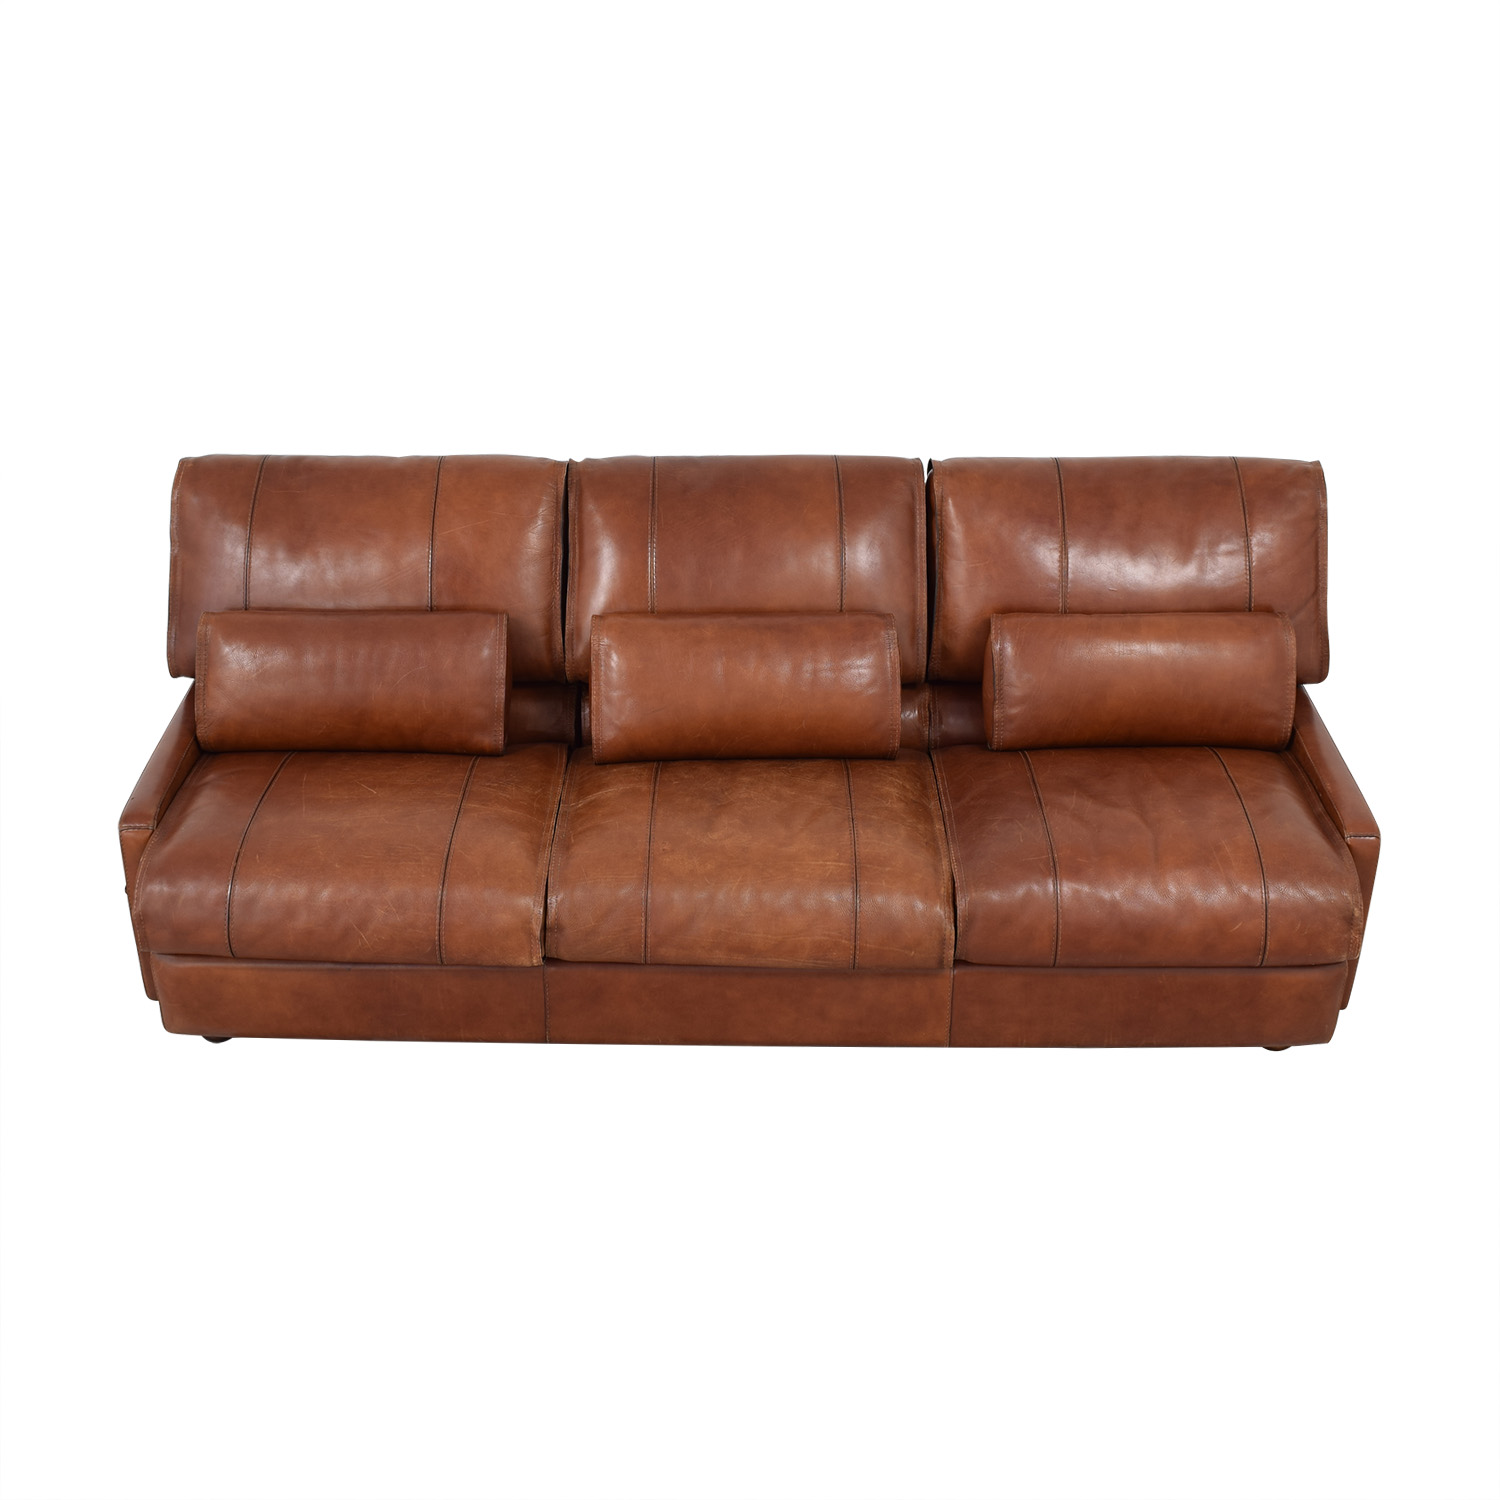 Modern Italian Leather Sofa